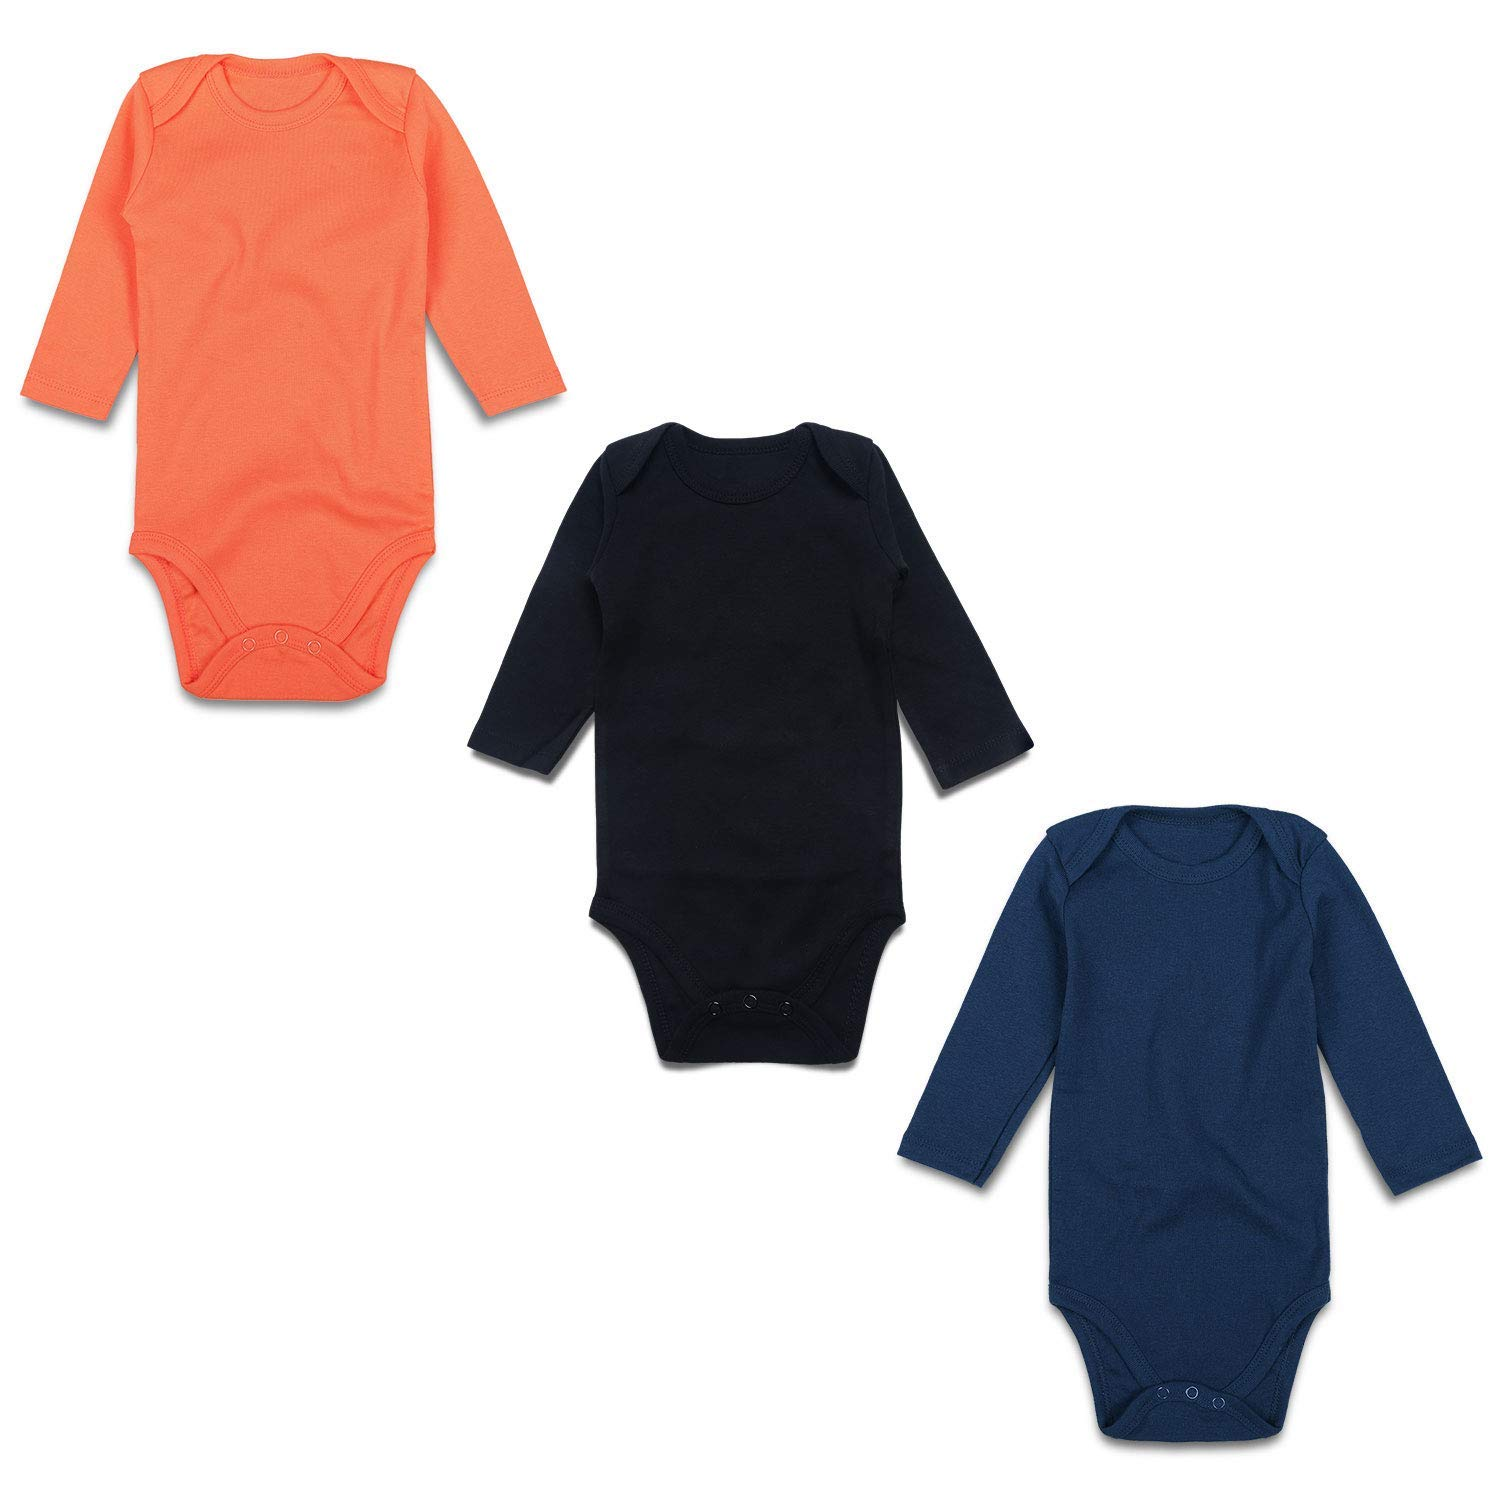 OPAWO Baby Cotton T Shirt Solid Color V-Neck Tops 3-Pack Boys Girls Short Sleeve Summer Tee Outfits 0-24 Months